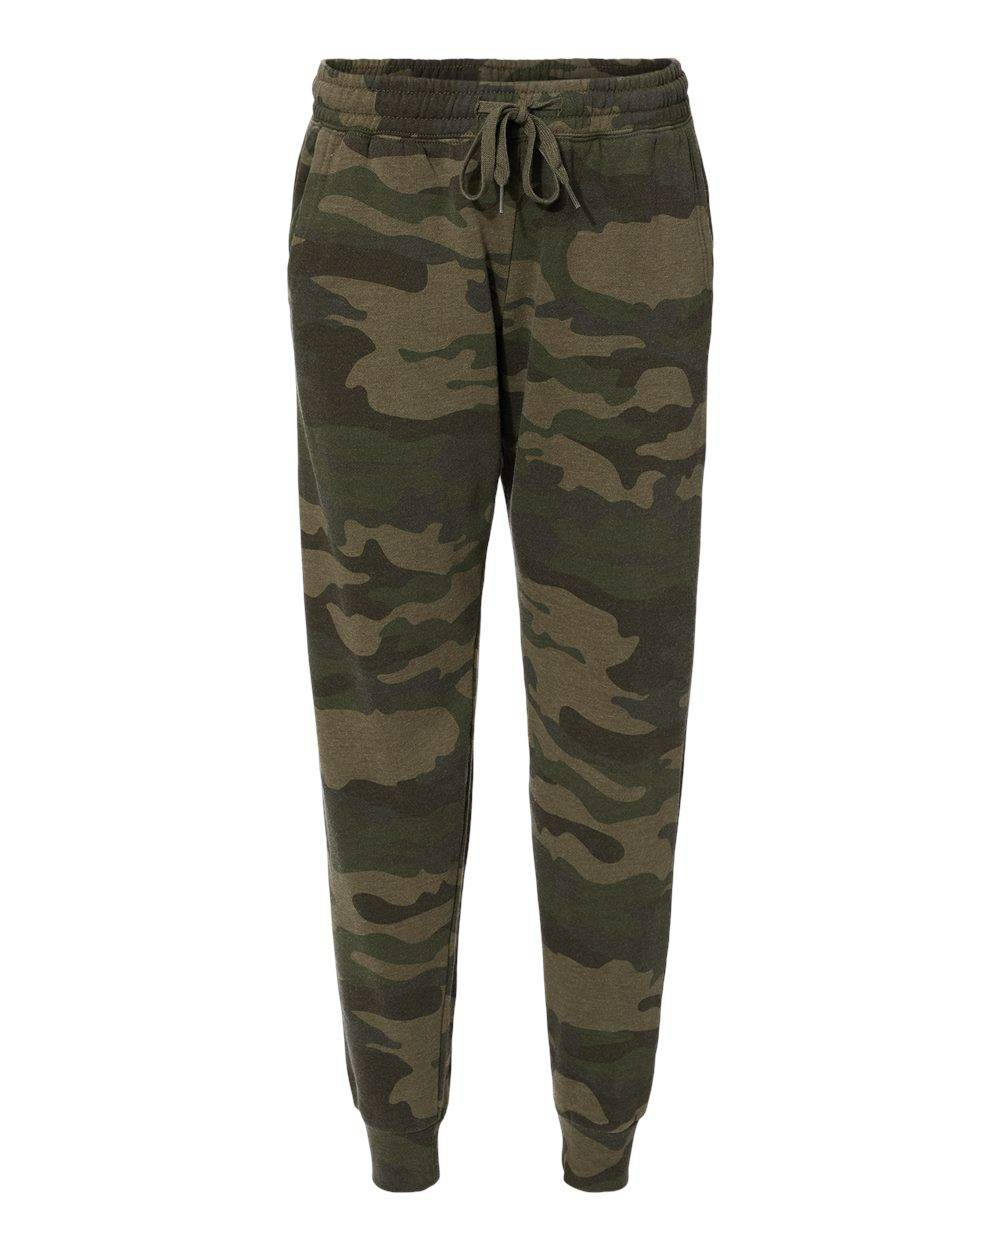 Independent Trading Co. - Women's California Wave Wash Sweatpants - PRM20PNT - Forest Camo Heather - Small